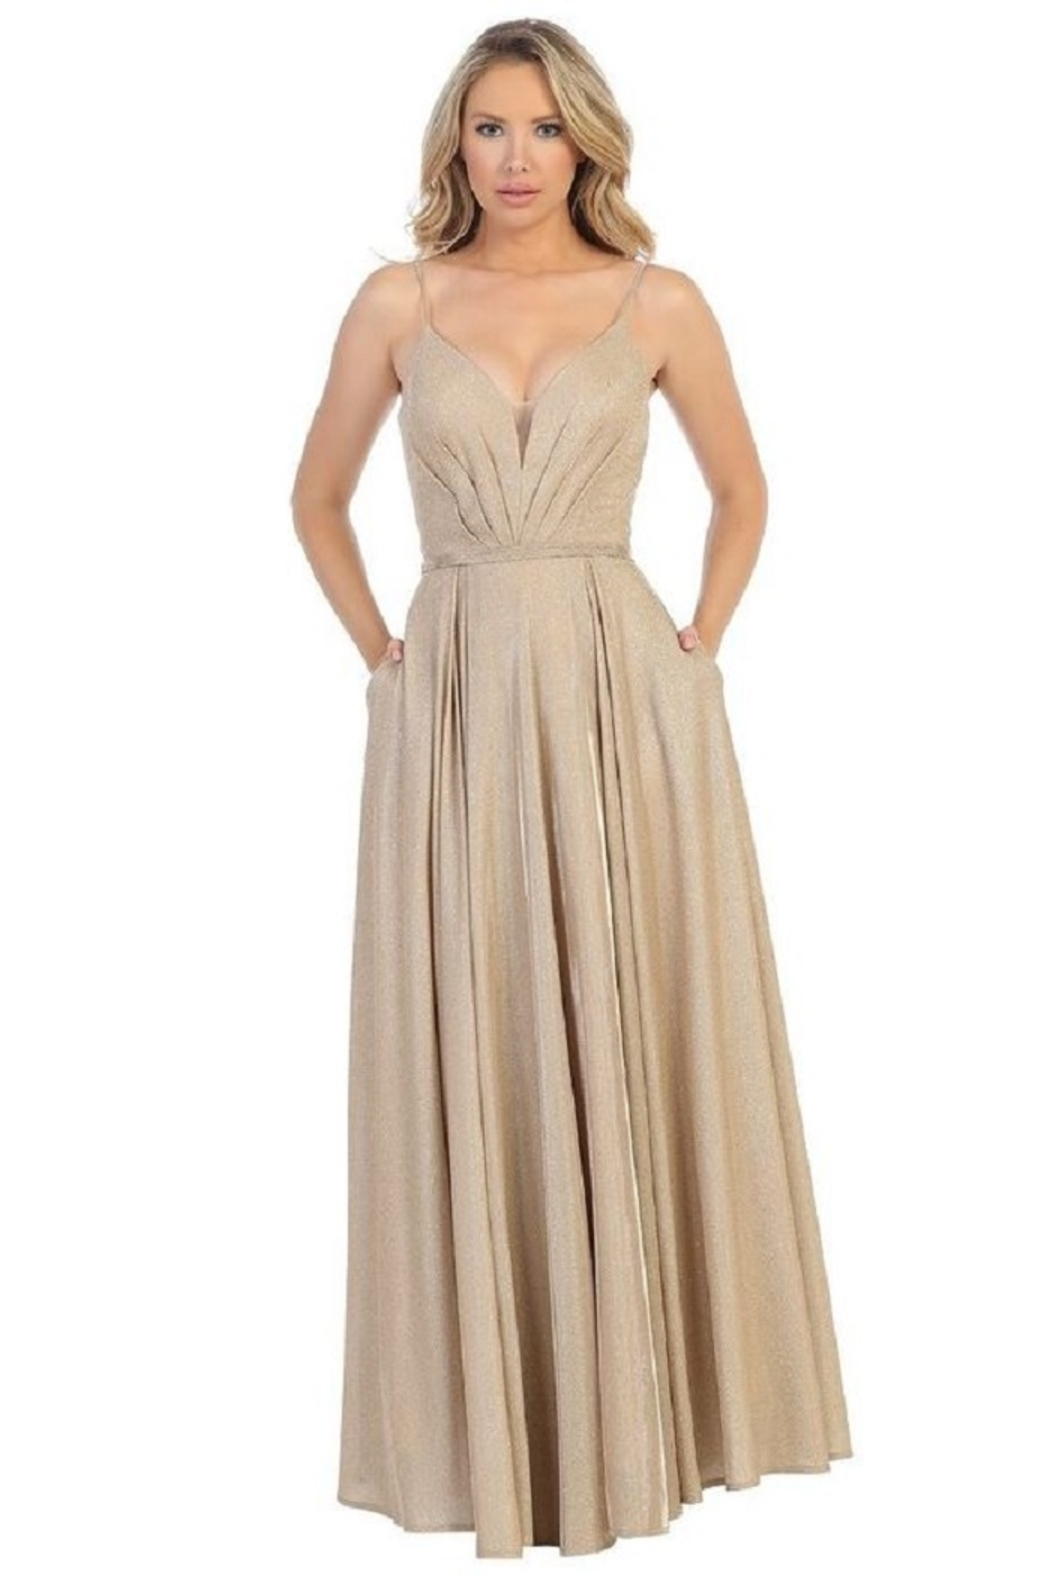 Let's Gold Metallic Pleated Formal Long Dress - Main Image